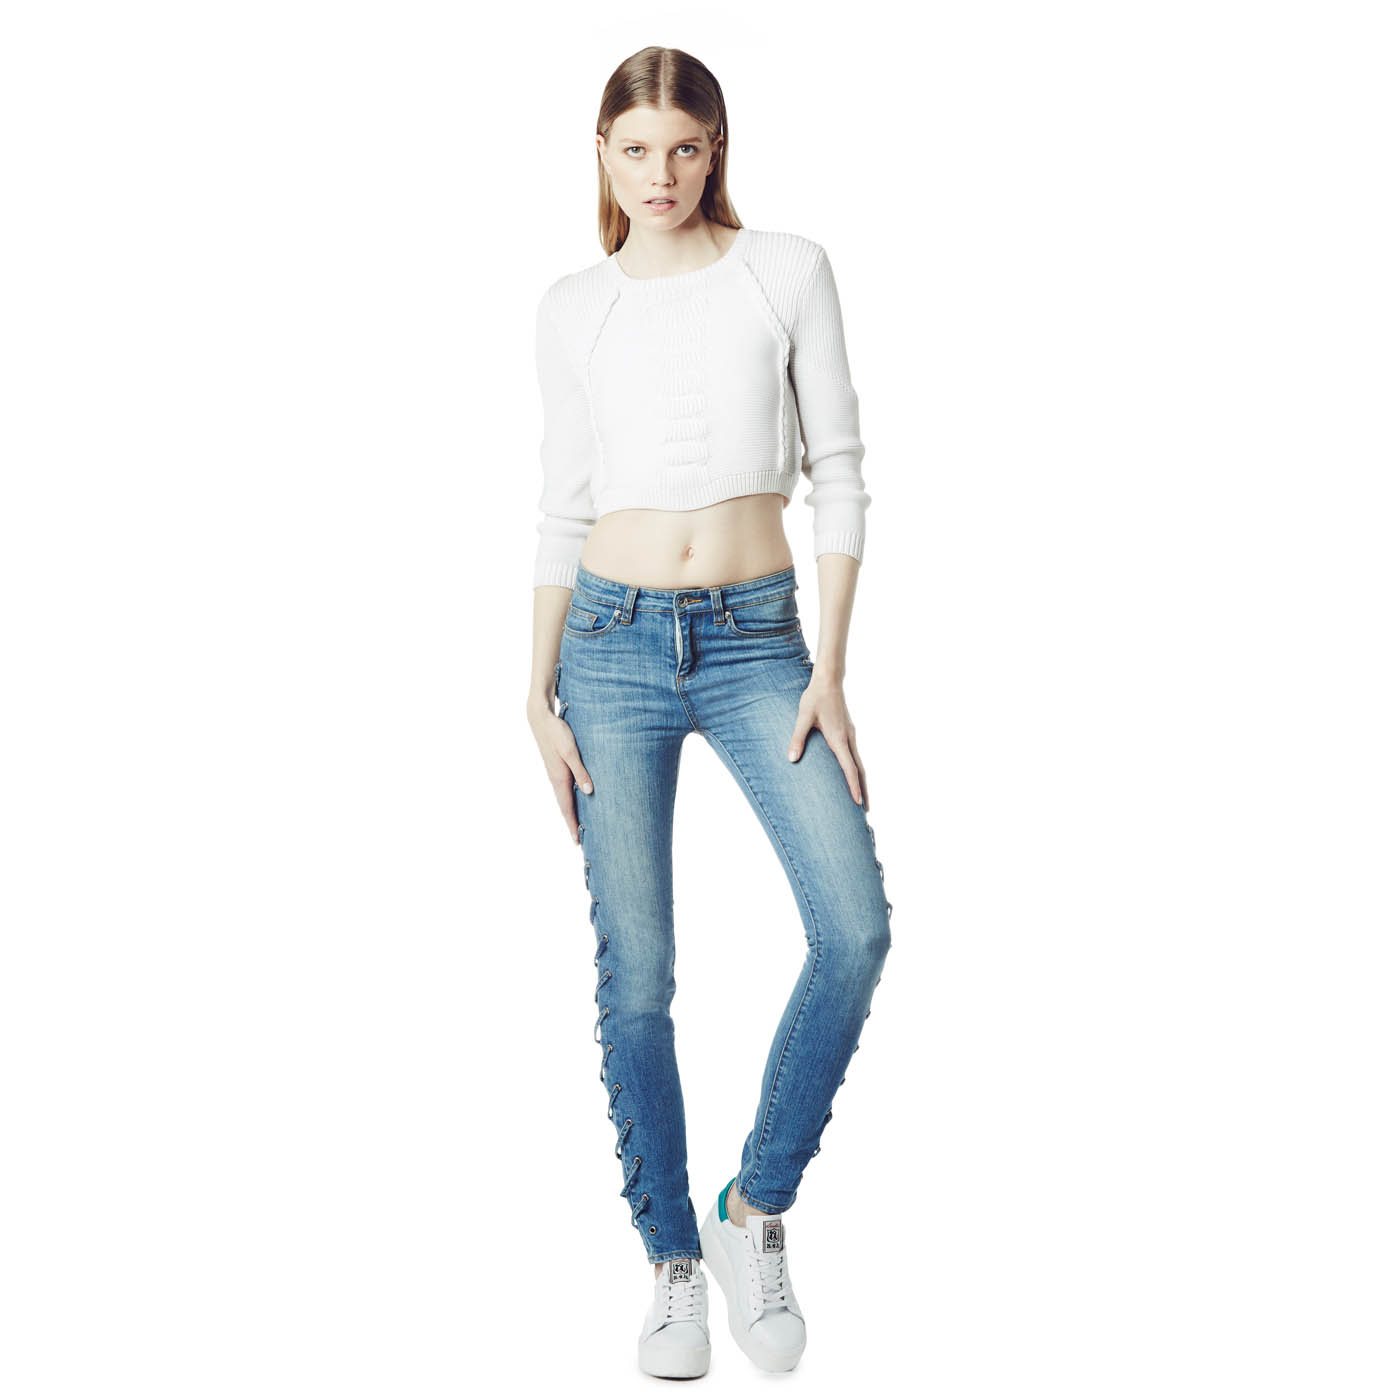 Ash Studio Paris  Angelz Denim Jeans 265002 (400)